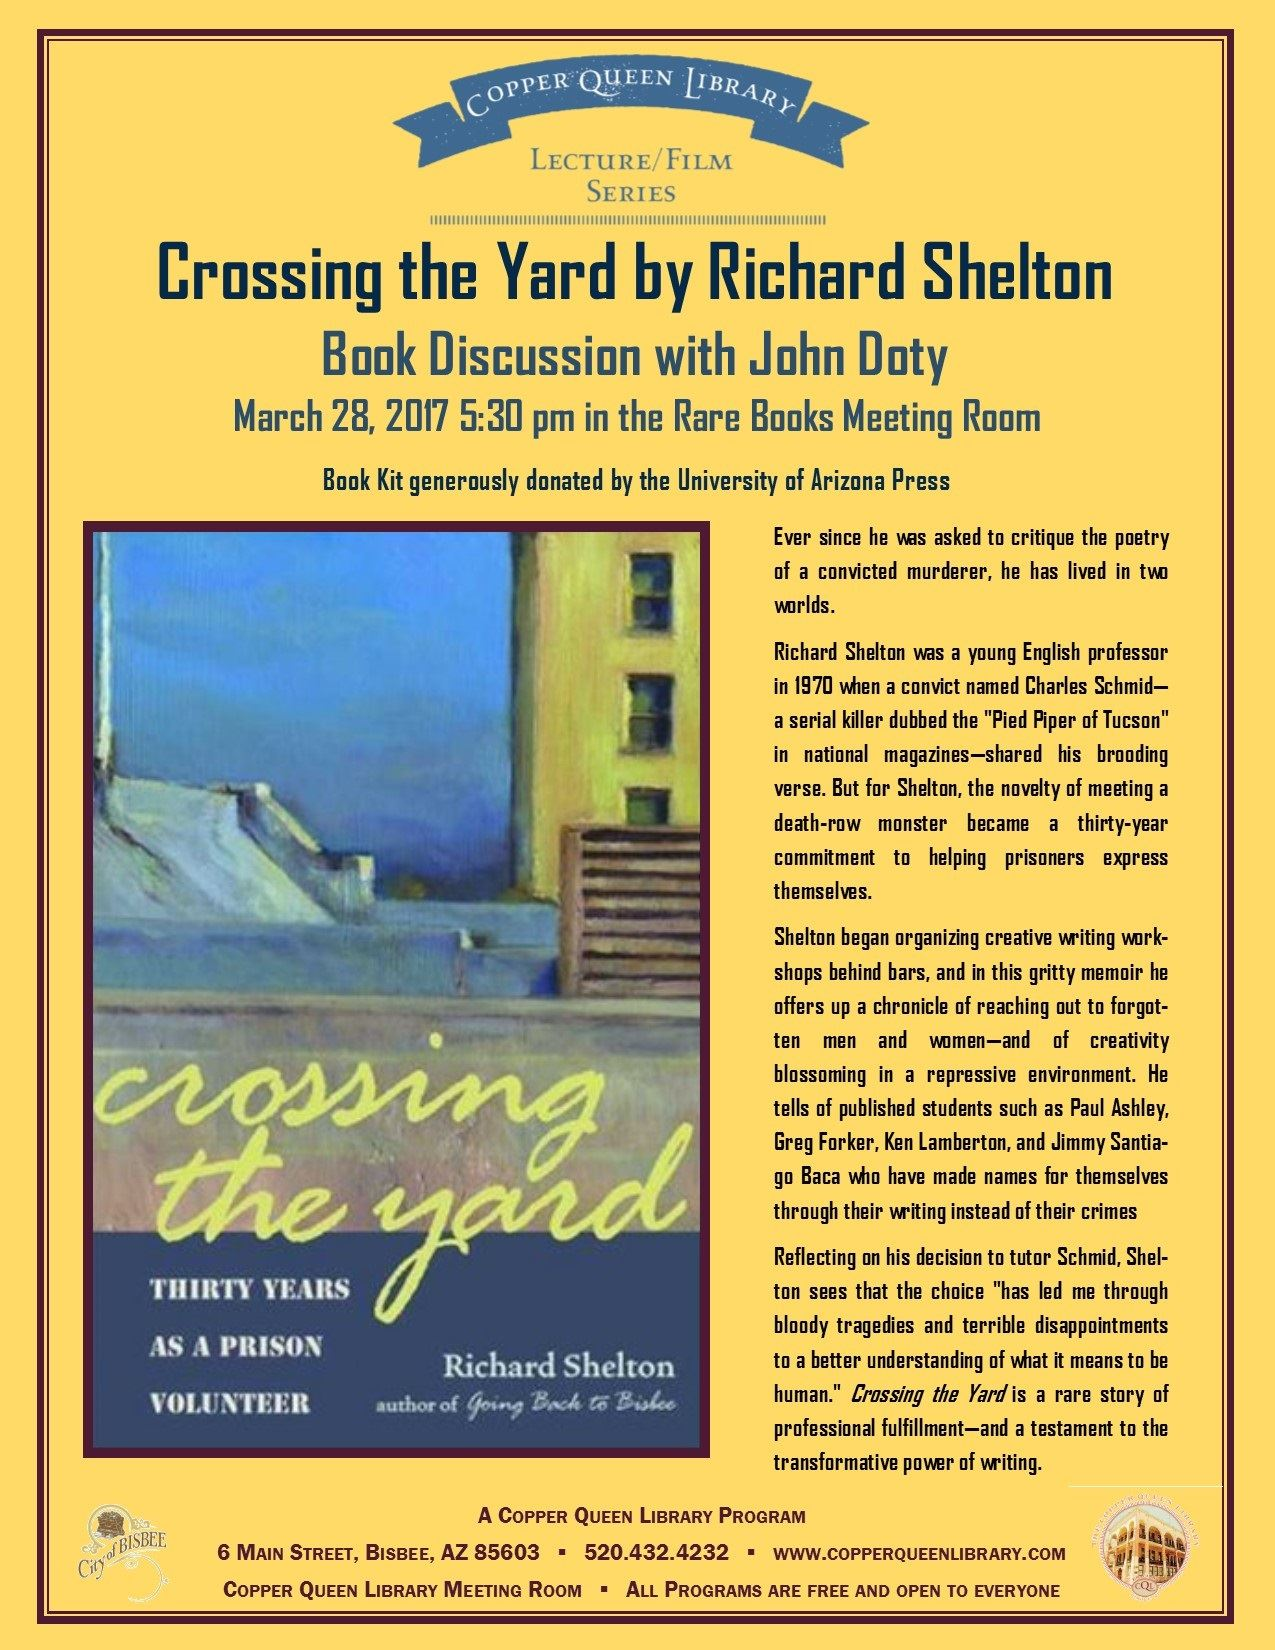 CROSSING THE YARD BOOK DISCUSSION POSTER